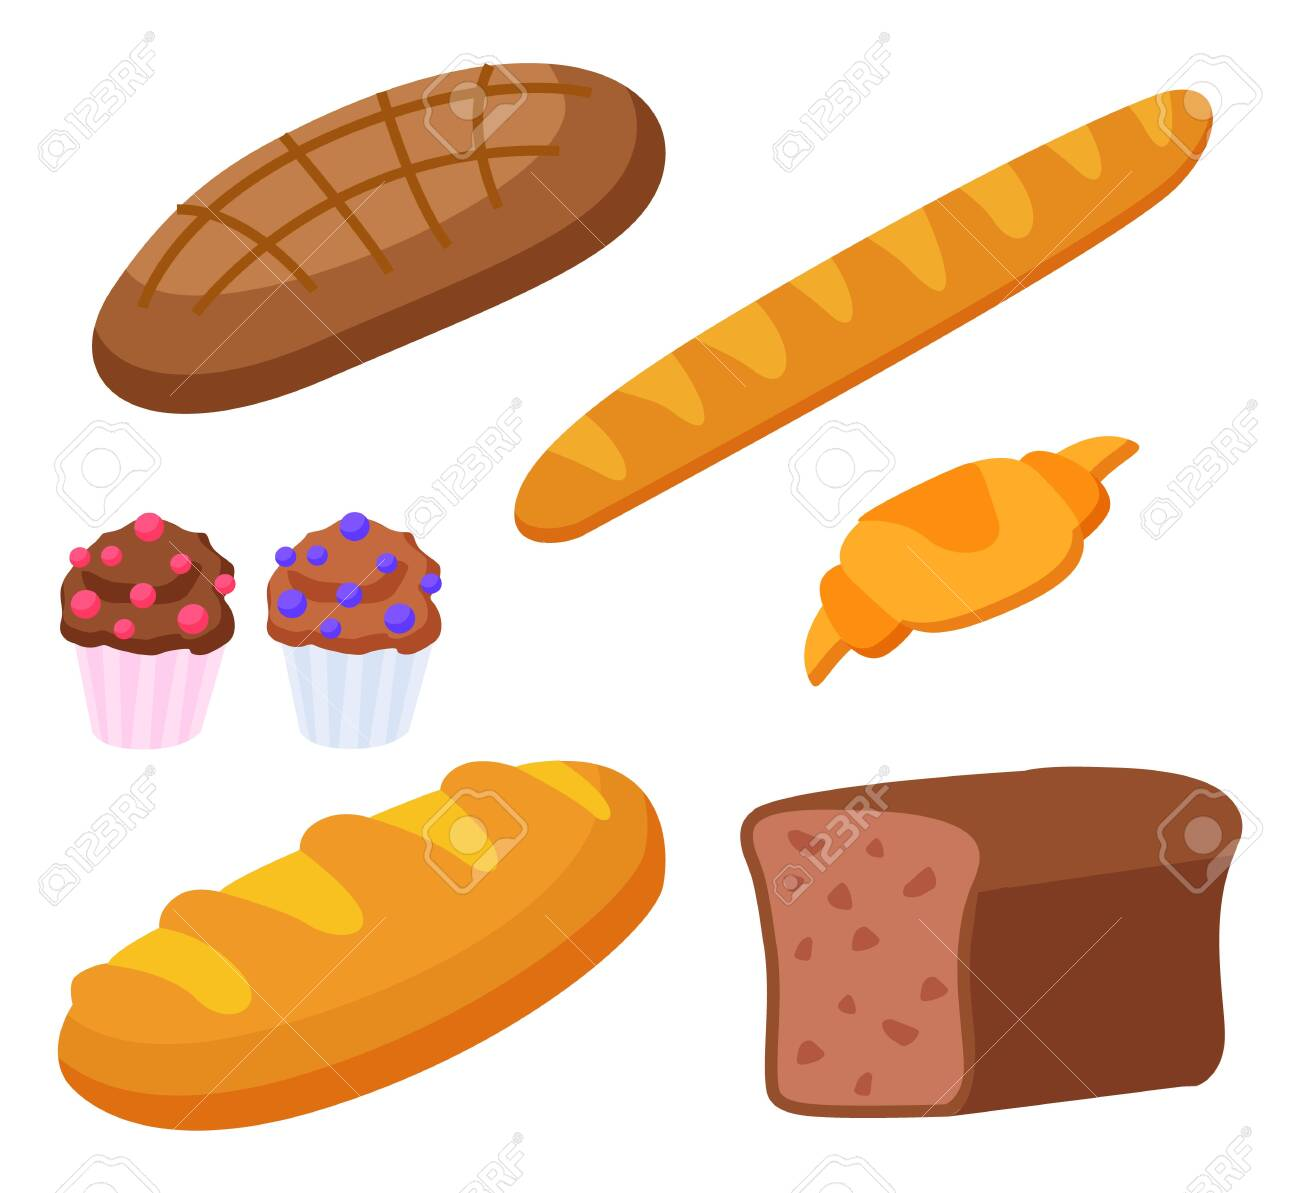 Set of products made of flour. Isolated baguette and croissant, french cuisine food. Rye bread and cupcakes with decorative topping. Dietary meal assortment of bakery. Flat style vector illustration - 139951035